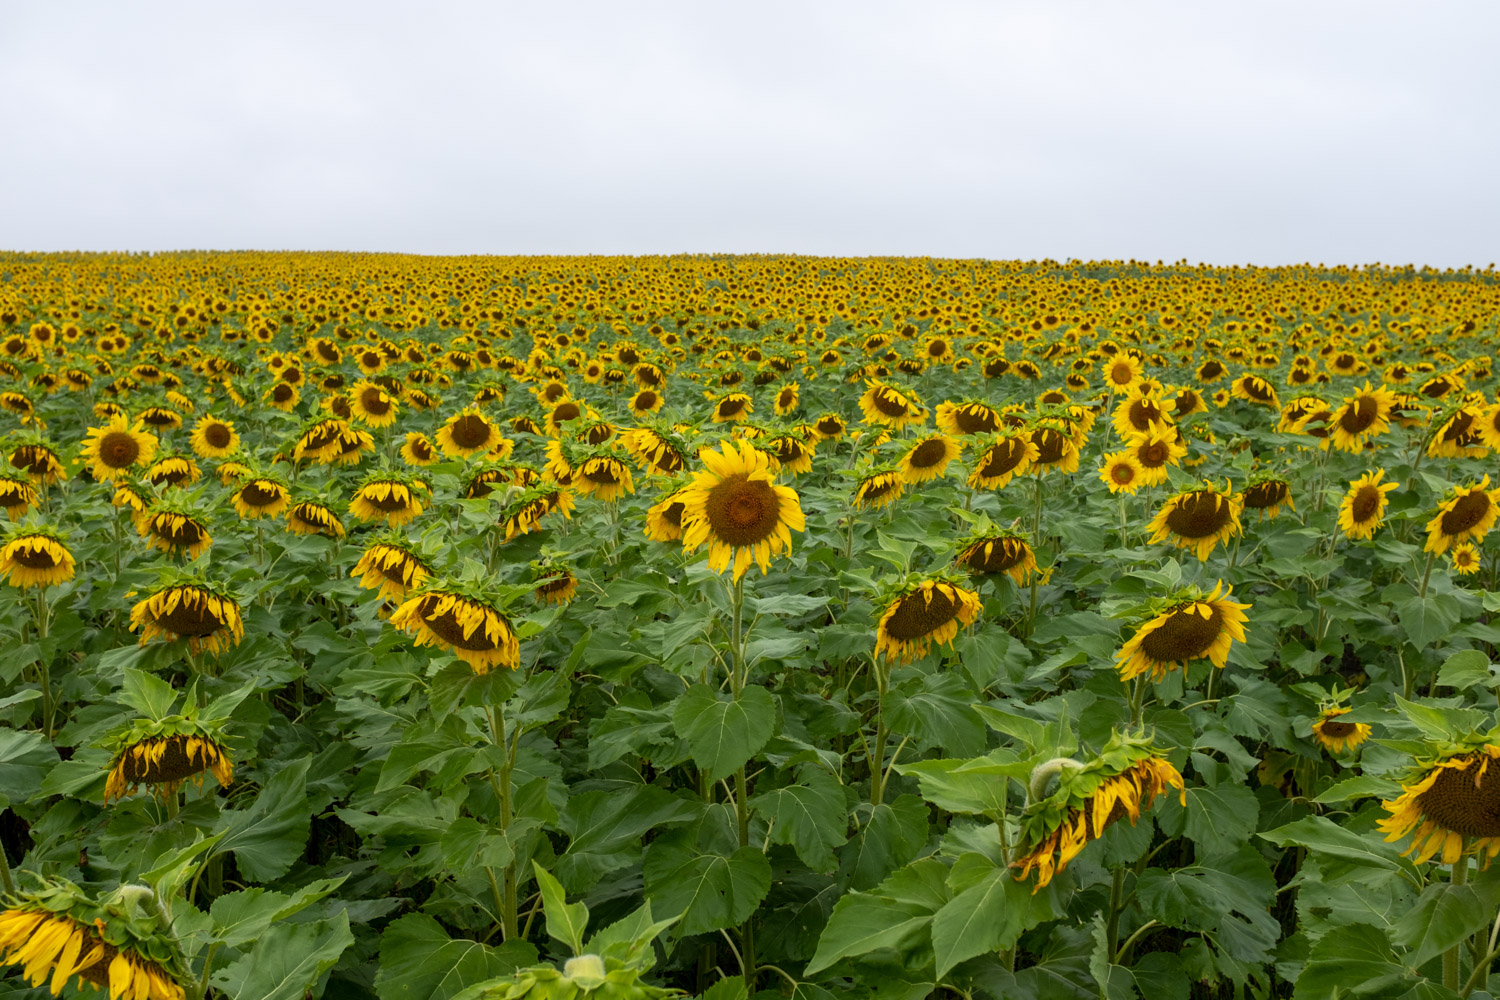 https://i2.wp.com/digital-photography-school.com/wp-content/uploads/2019/06/lightroom-landscape-tips-sunflowers-original.jpg?resize=1500%2C1000&ssl=1